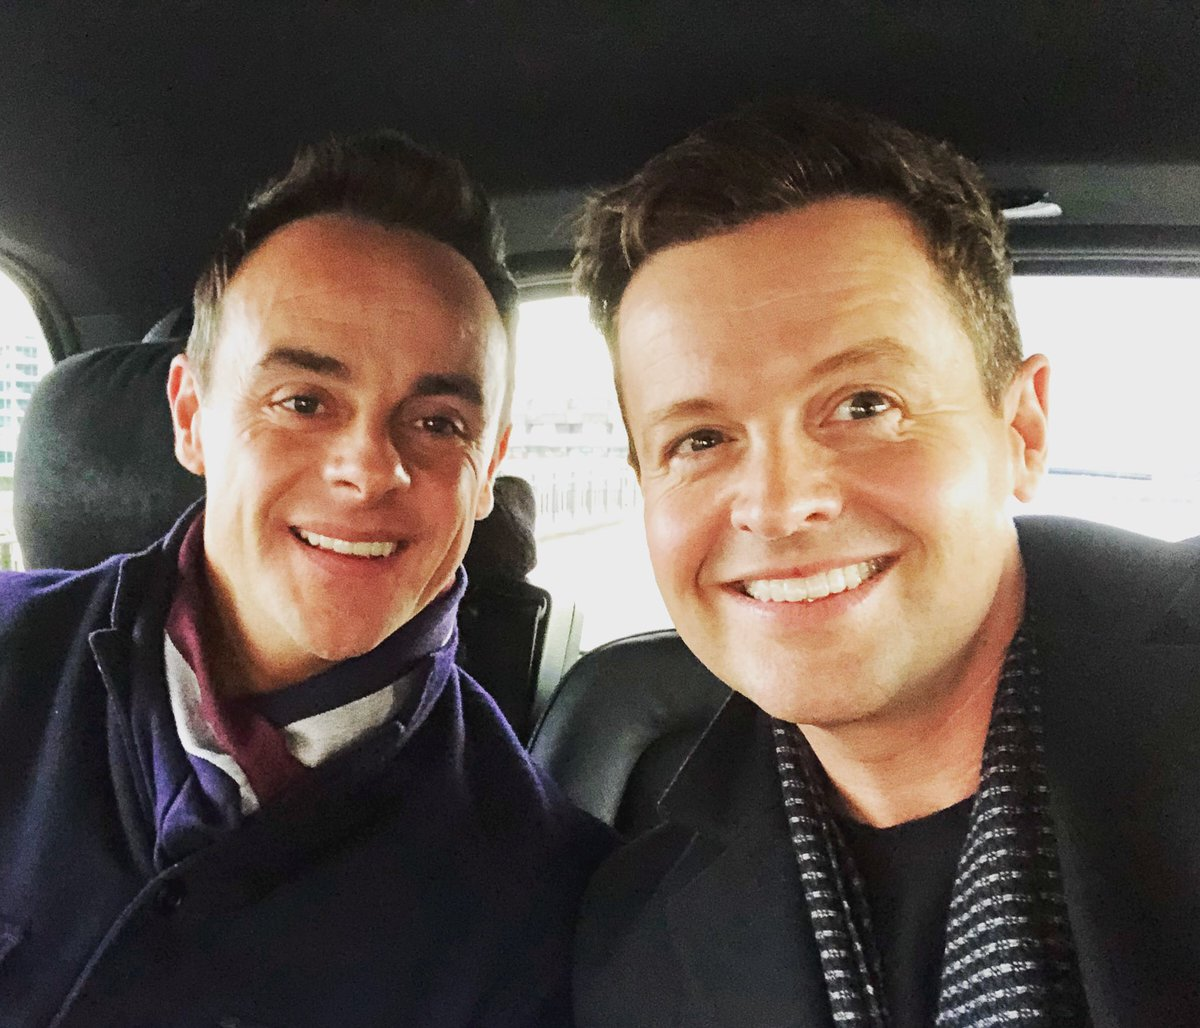 #BGT 2019. Audition day 1. The boys are back in town!